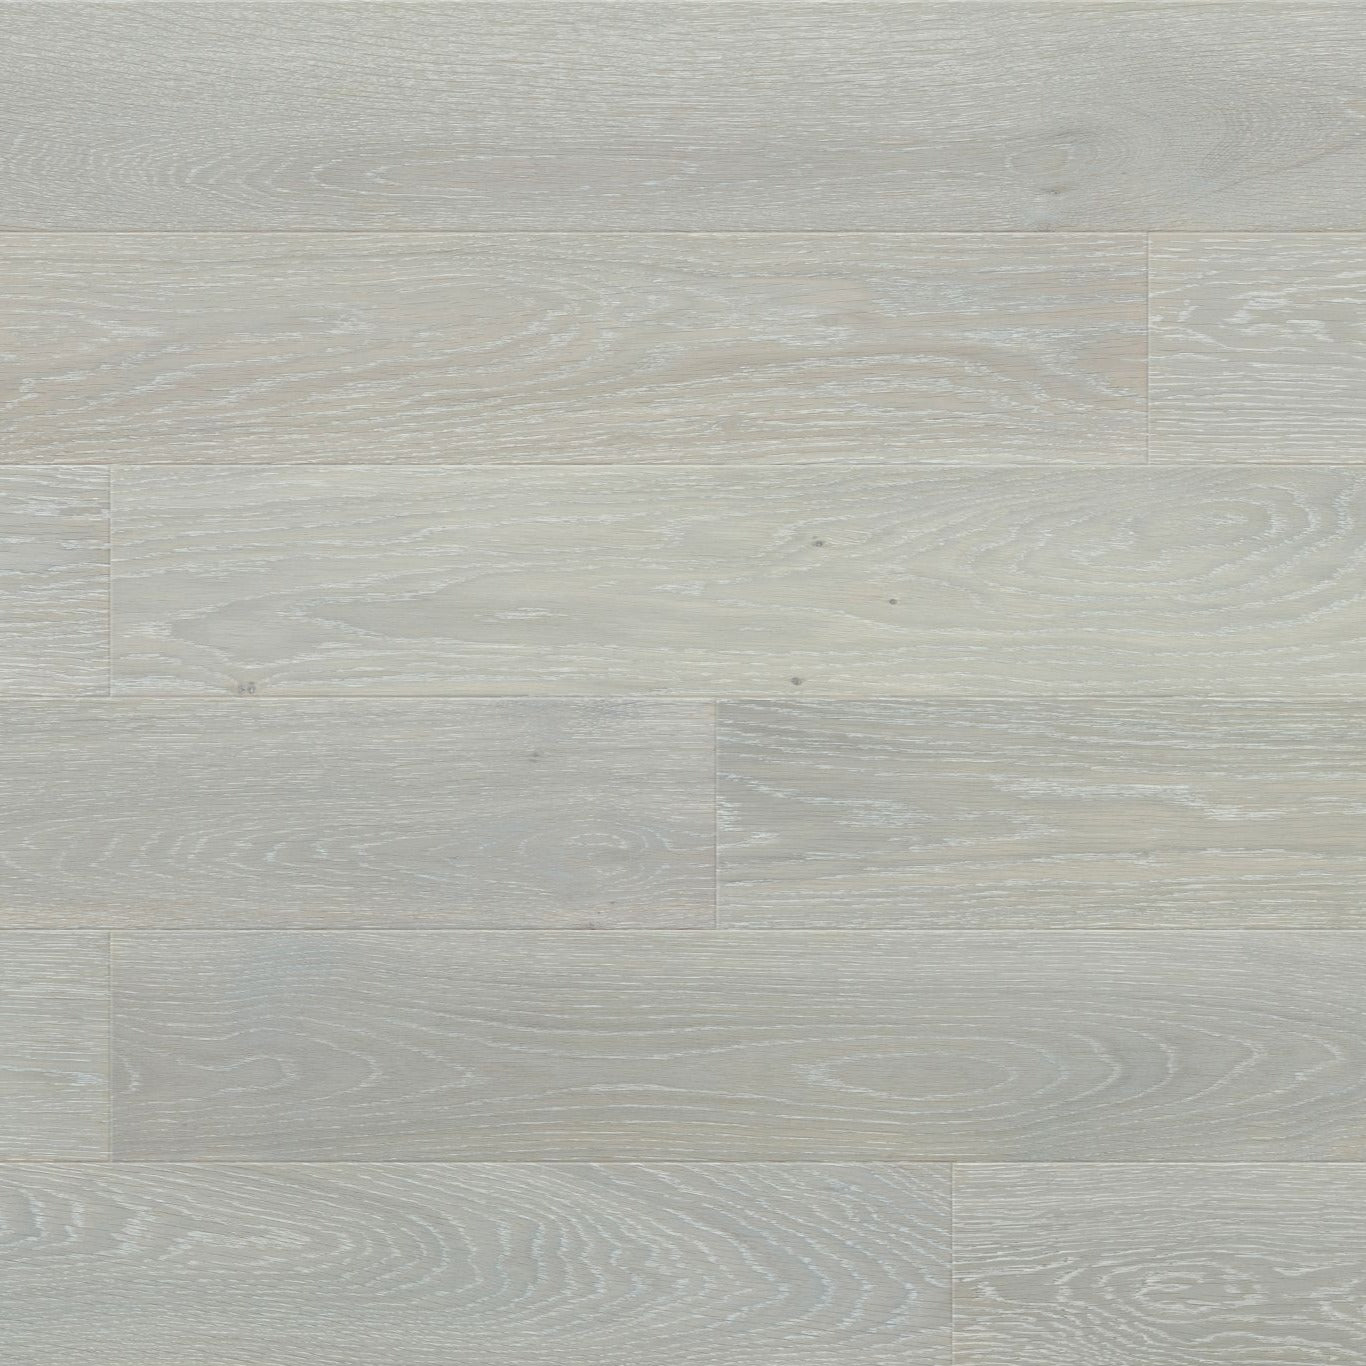 Light engineered flooring